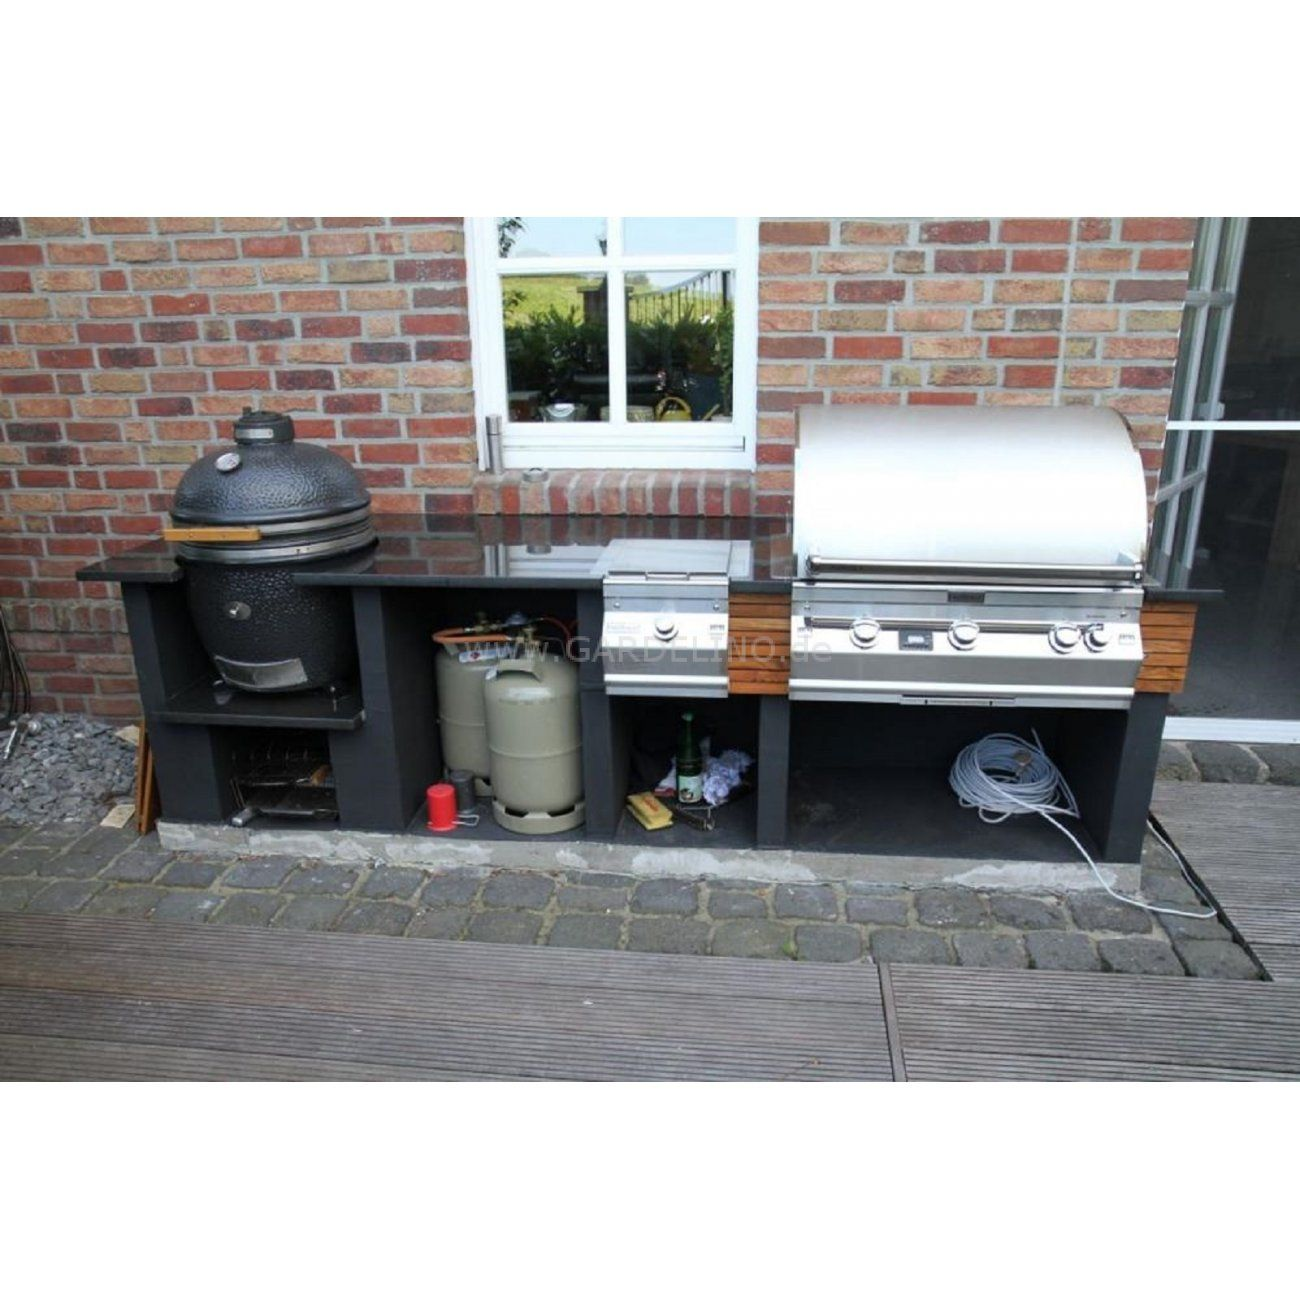 Grill In Outdoor Küche Integrieren Fire Magic Outdoorküche Mit Monolith Kamadogrill Fire Magic